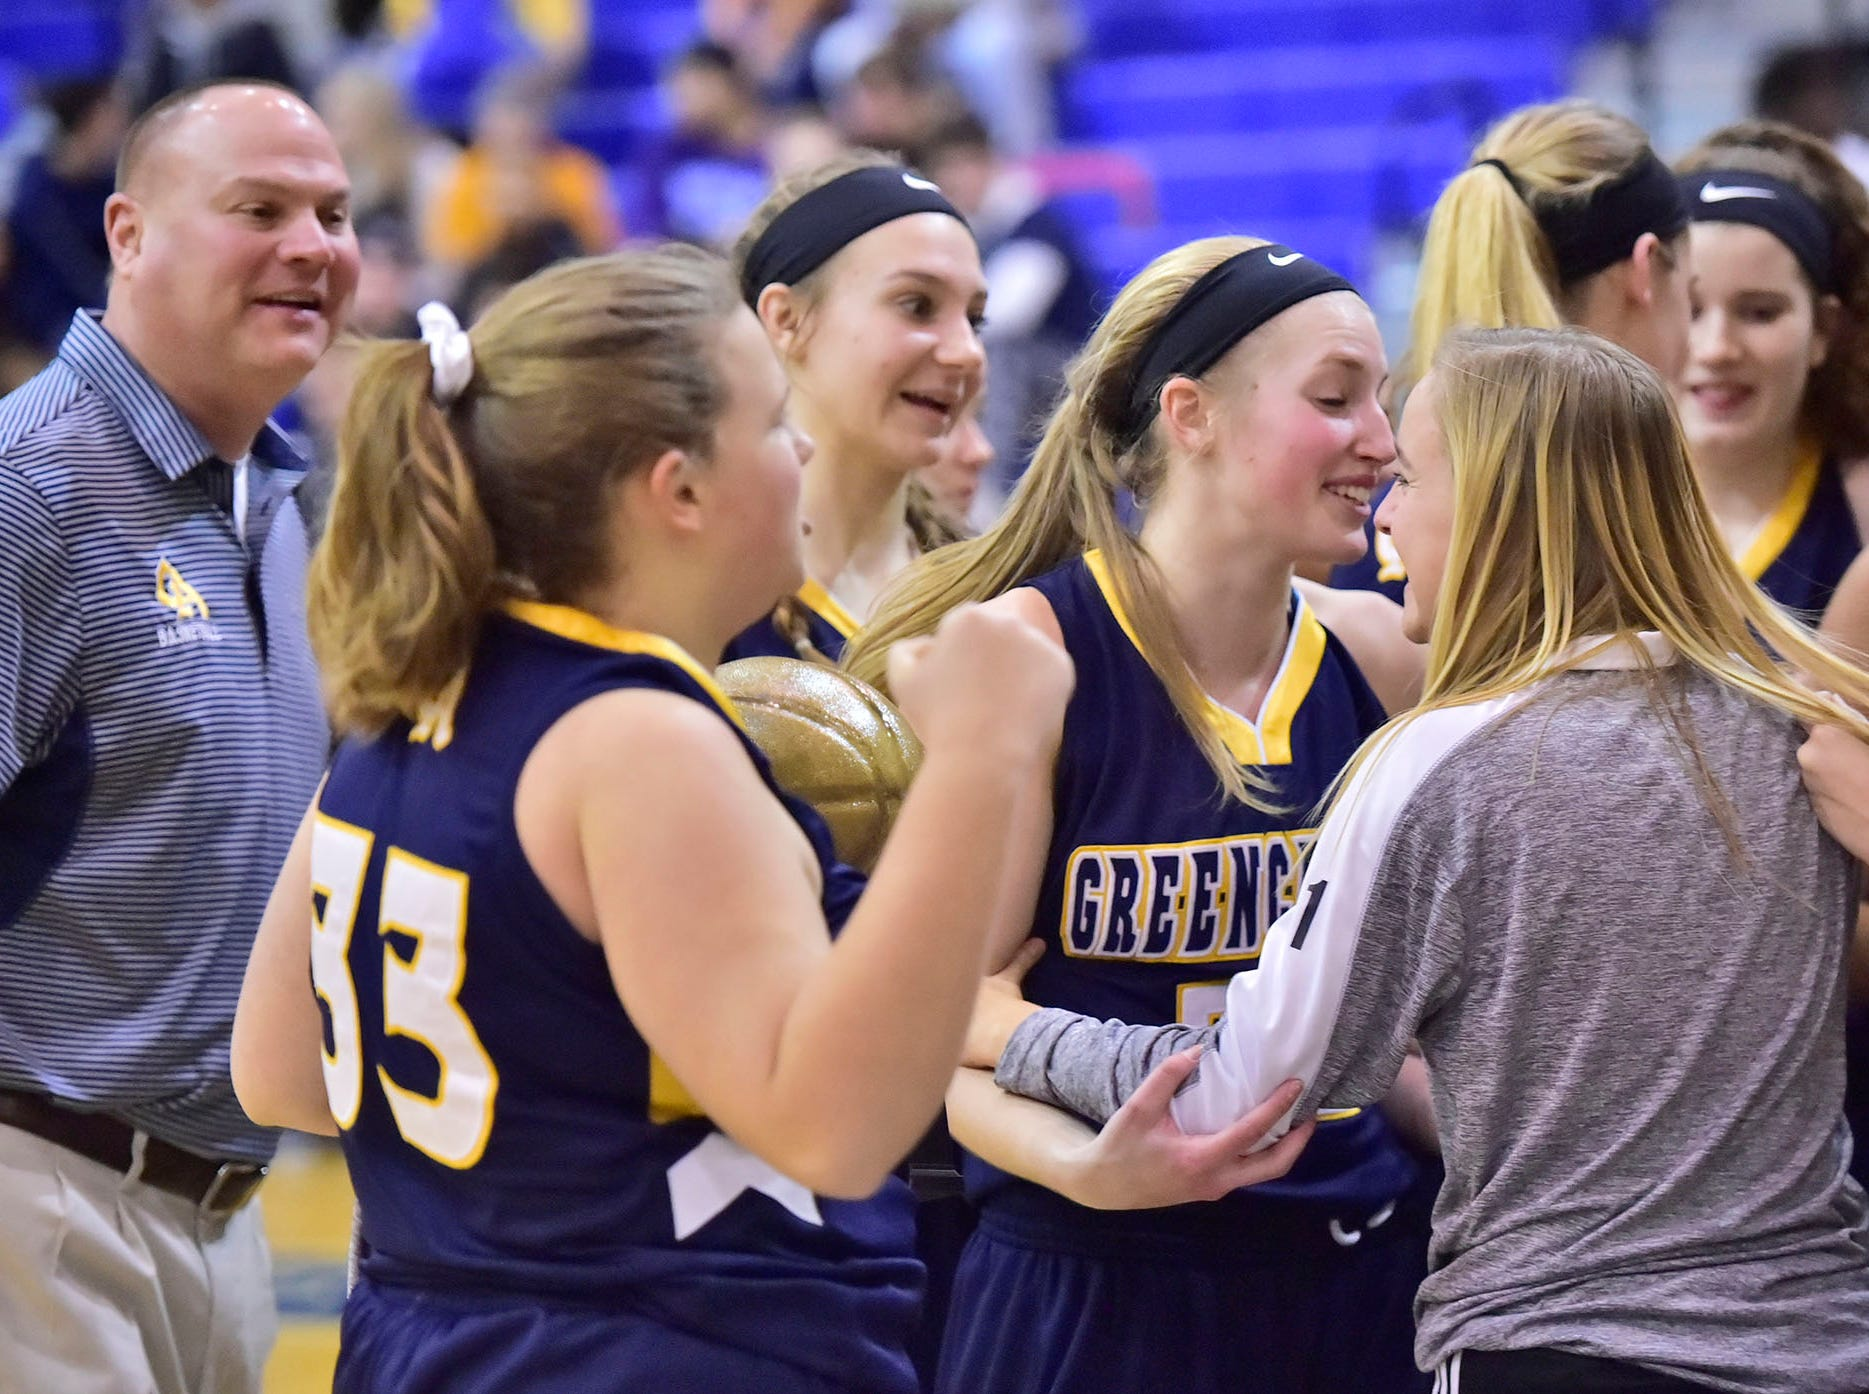 Greencastle teammates celebrate after a  26-22 win over Chambersburg during the finals at Franklin County Tip-Off Tournament, Saturday, Dec. 8, 2018.